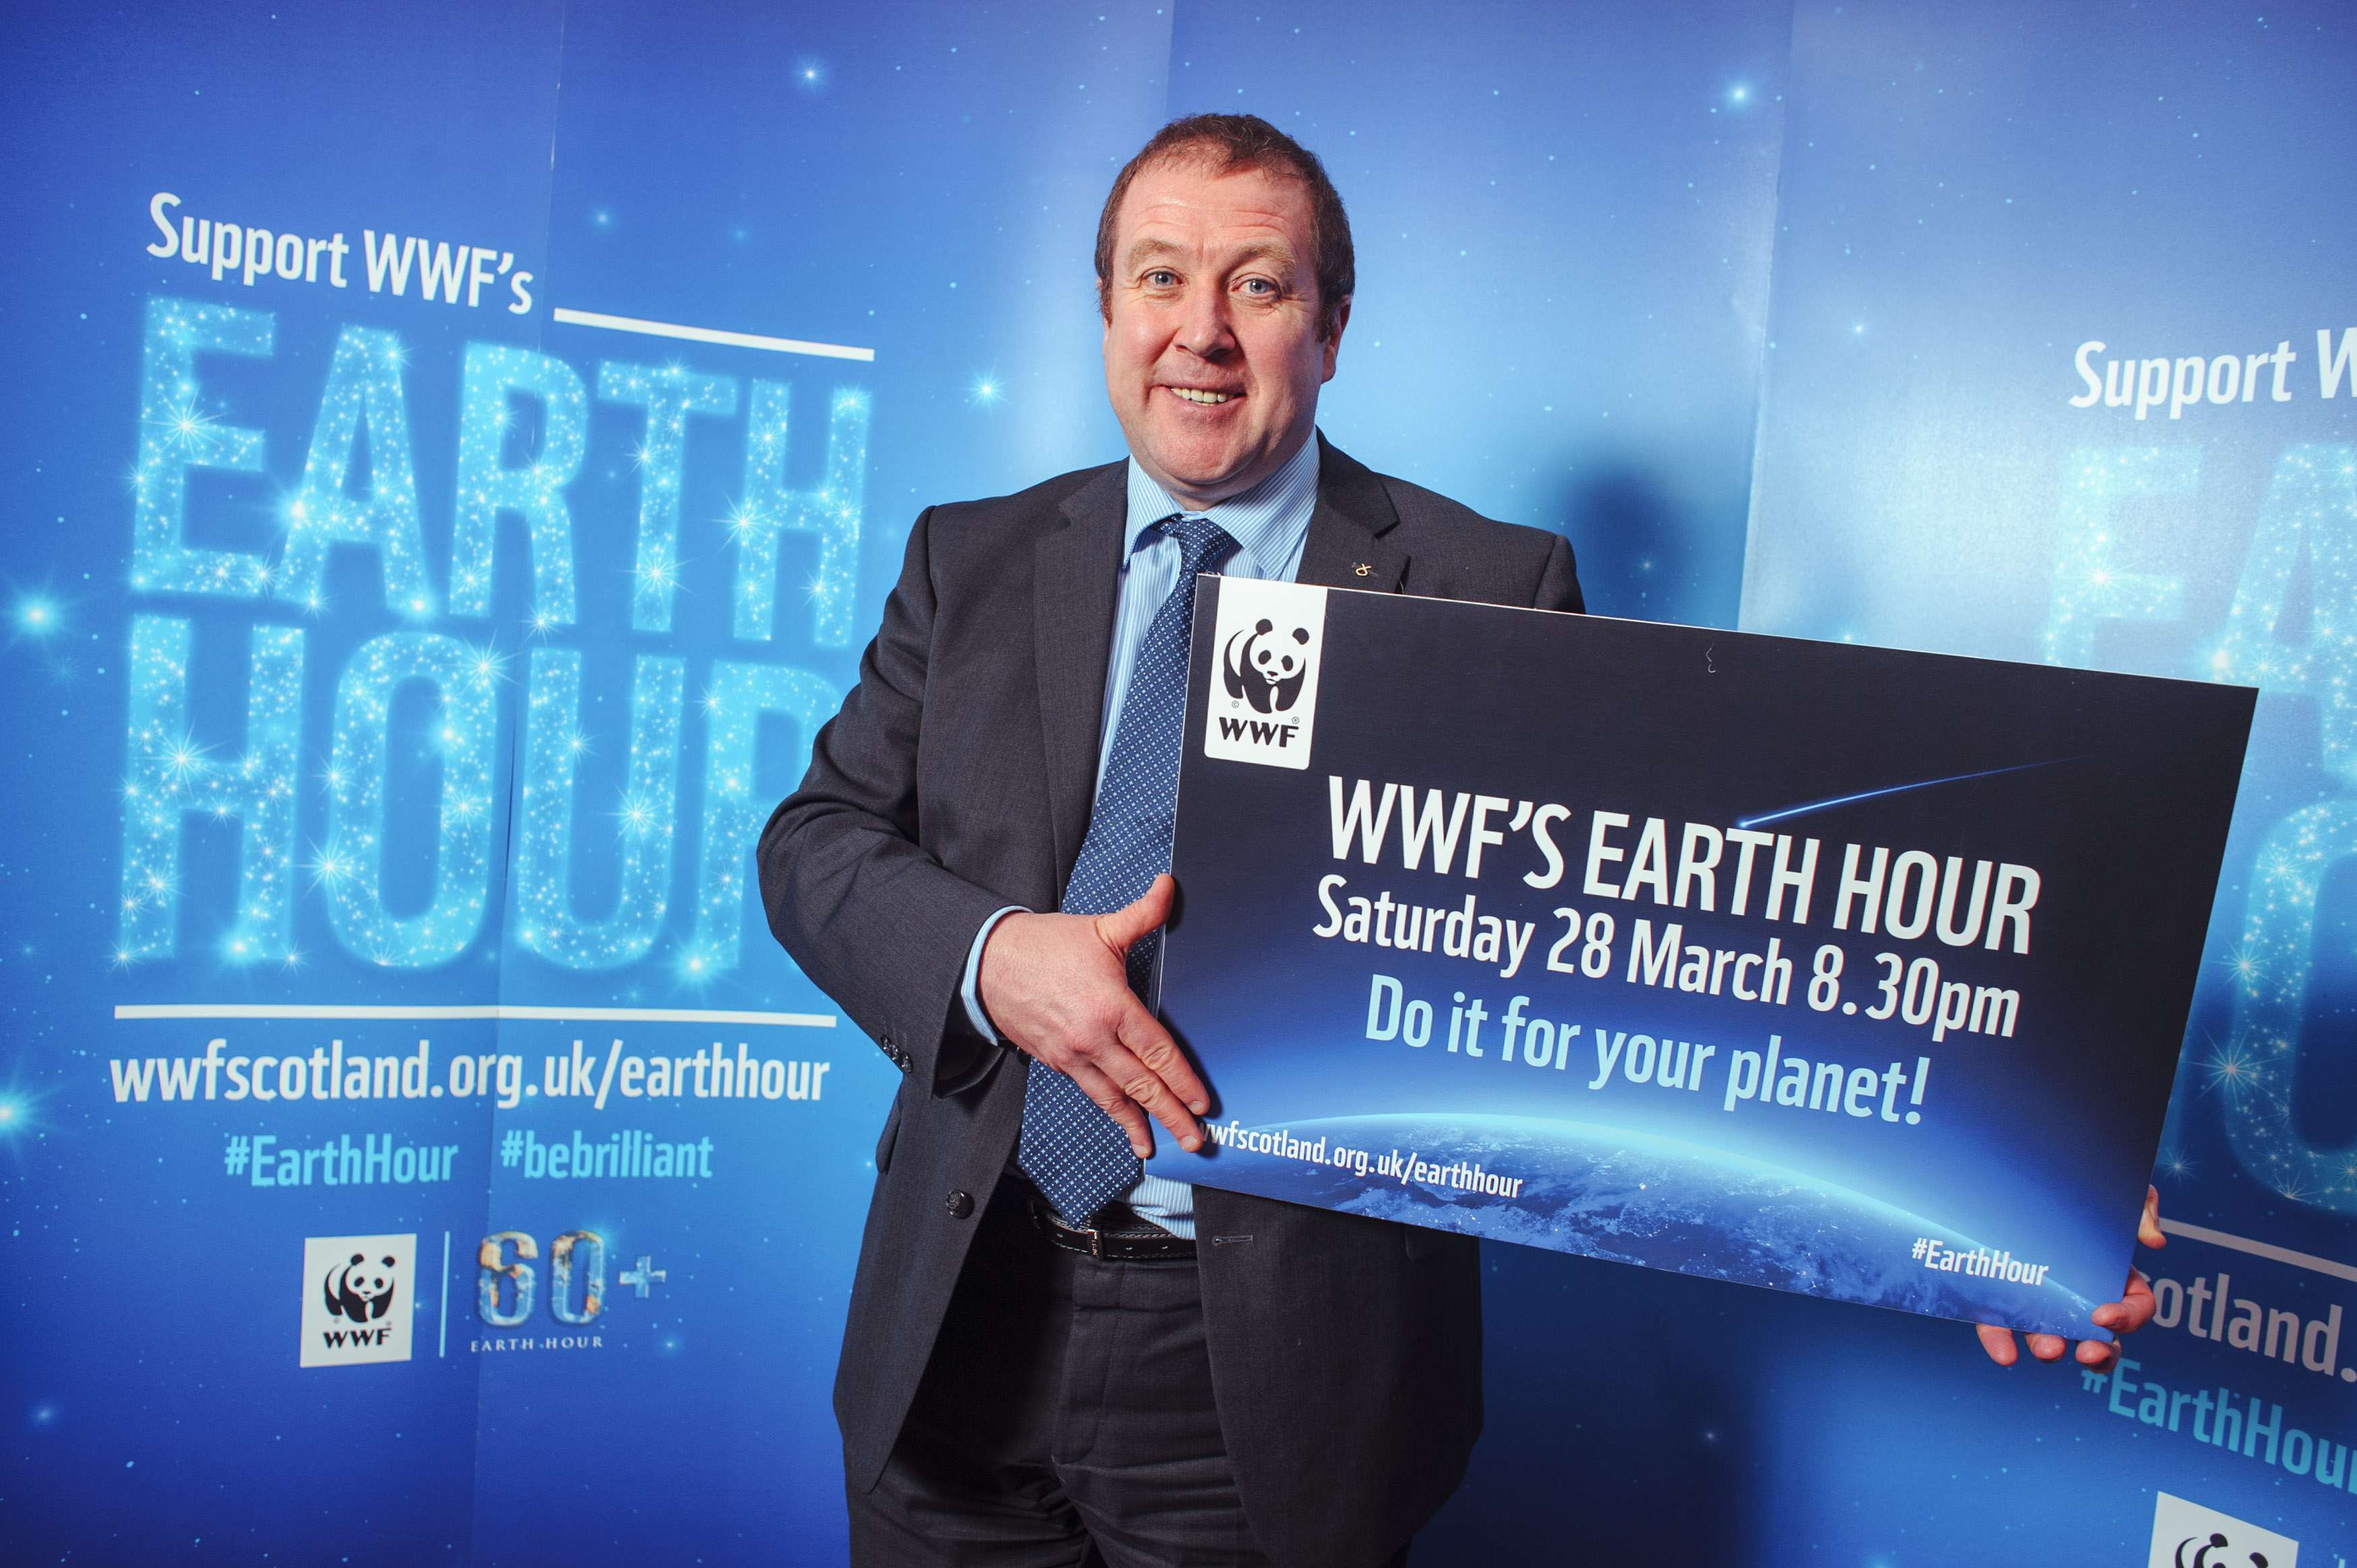 EDINBURGH, UK - March 2015: Graham Dey MSP backs WWF's Earth Hour which takes place on Saturday 23rd March at 8:30pm.  Earth Hour brings together people all across the world who will be switching out their lights for one hour to show their support for action on climate change and for a more sustainable future. (Photograph: MAVERICK PHOTO AGENCY)